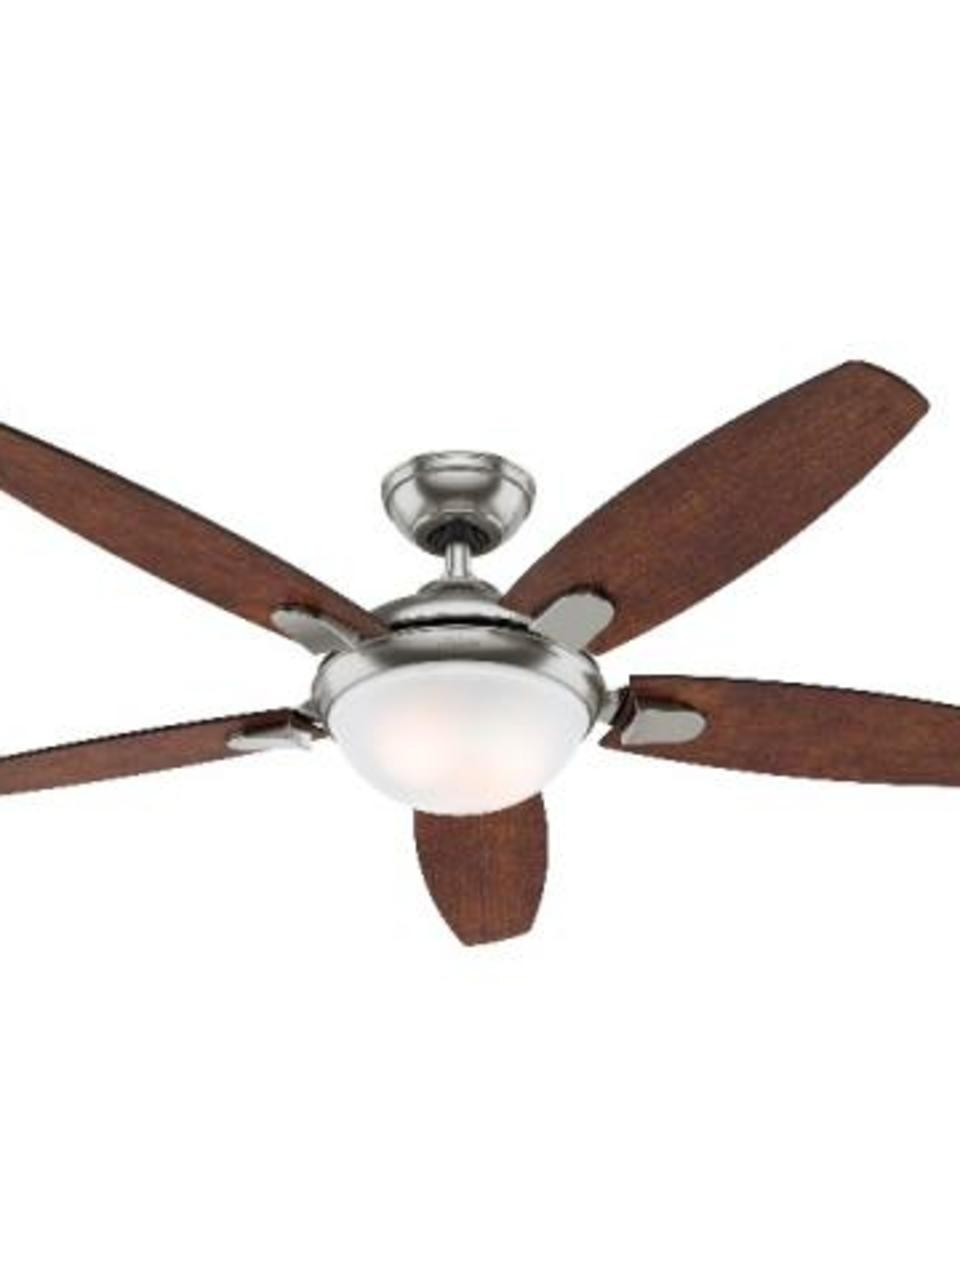 Hunter Recalls Ceiling Fans For Incorrect Installation Instructions Khgi